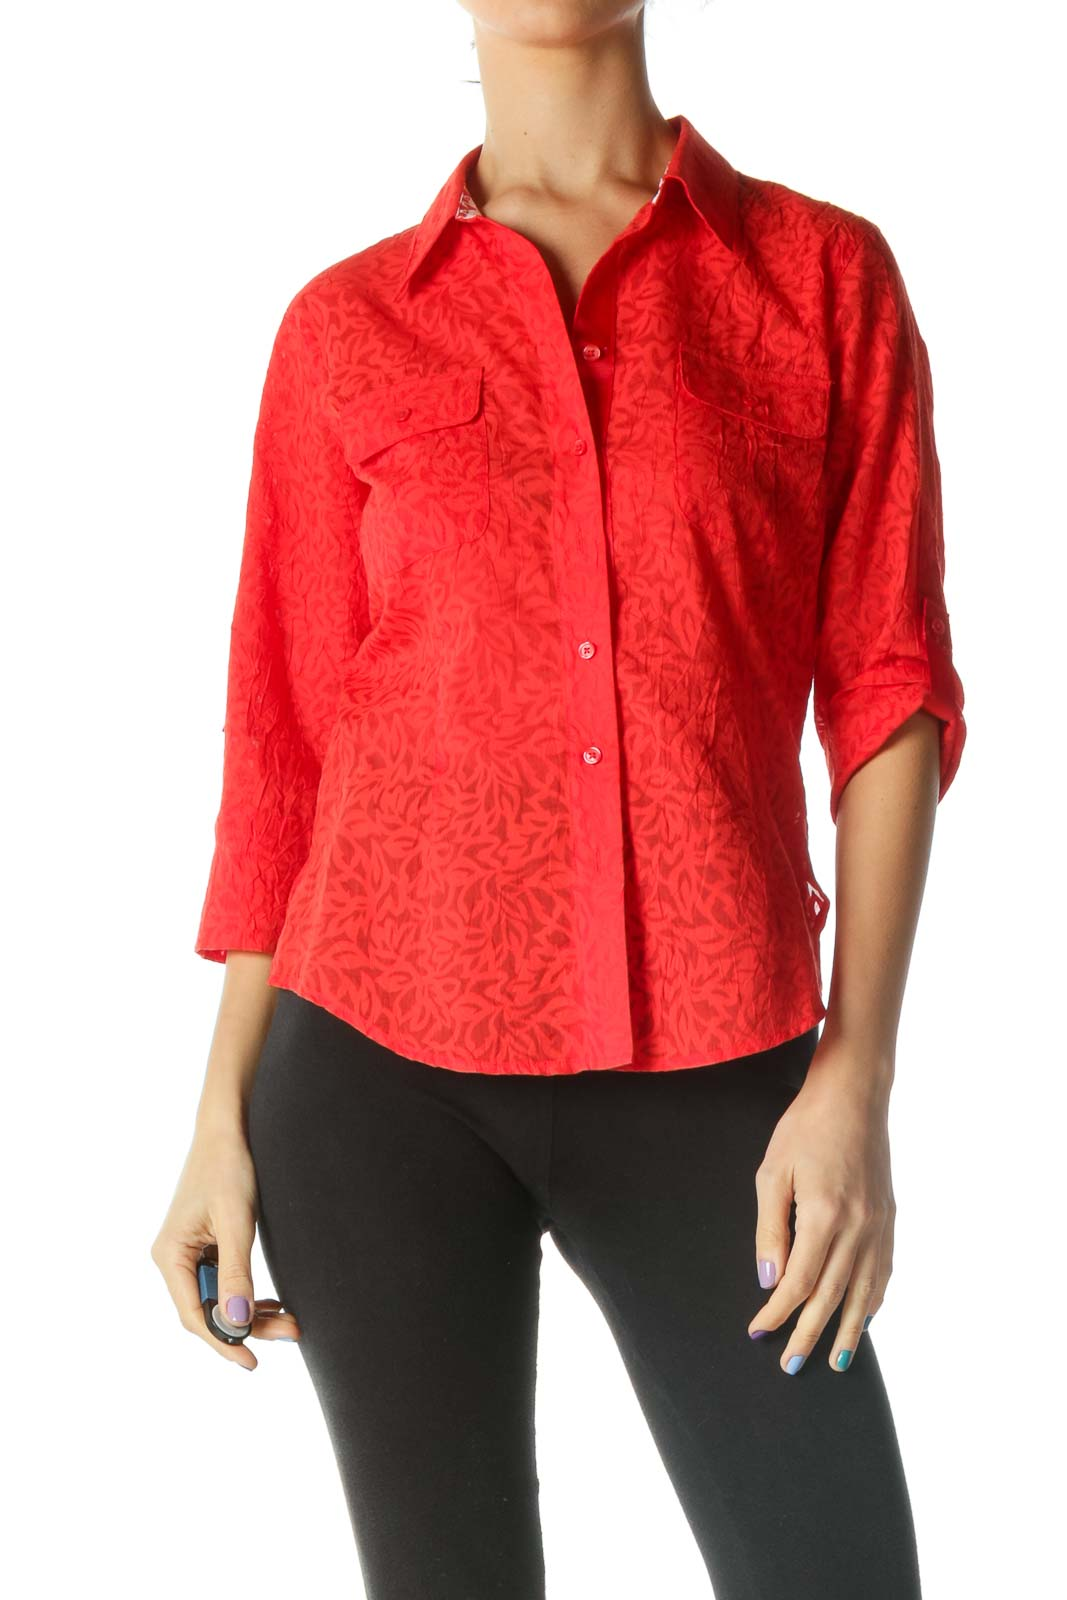 Red Floral 3/4 Sleeve Collared Shirt